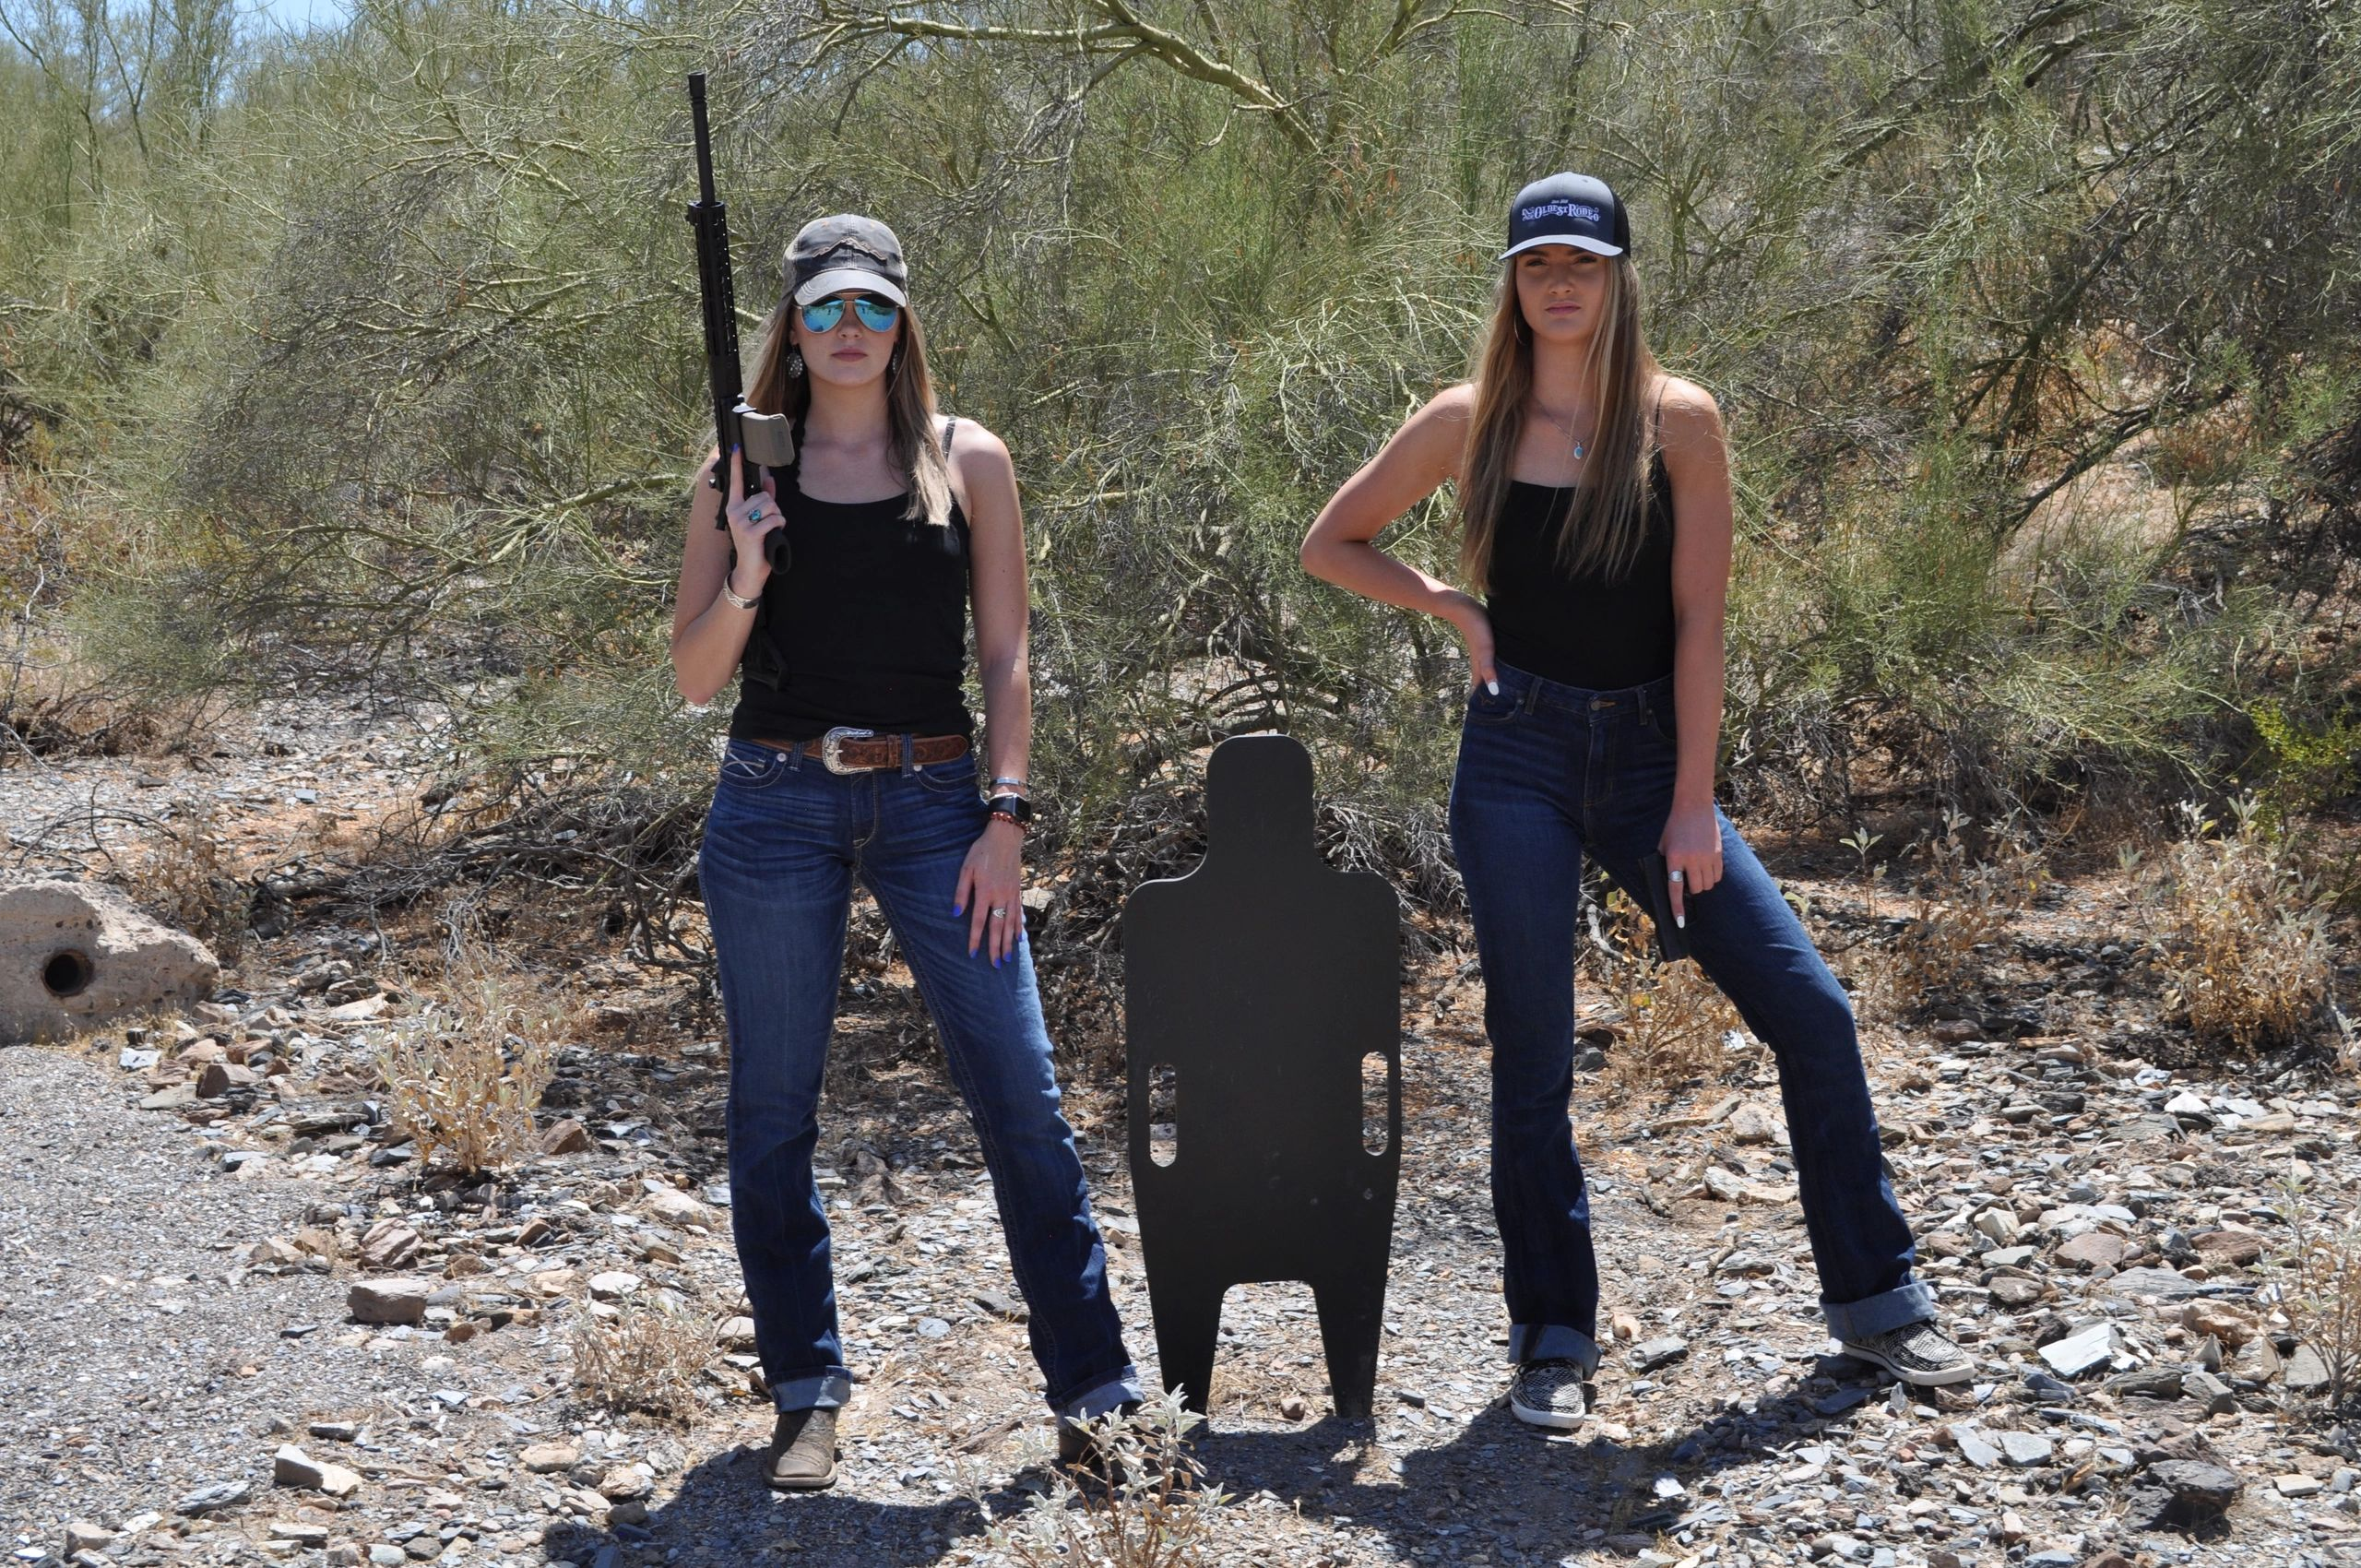 Two women in tank tops with guns and a steel target